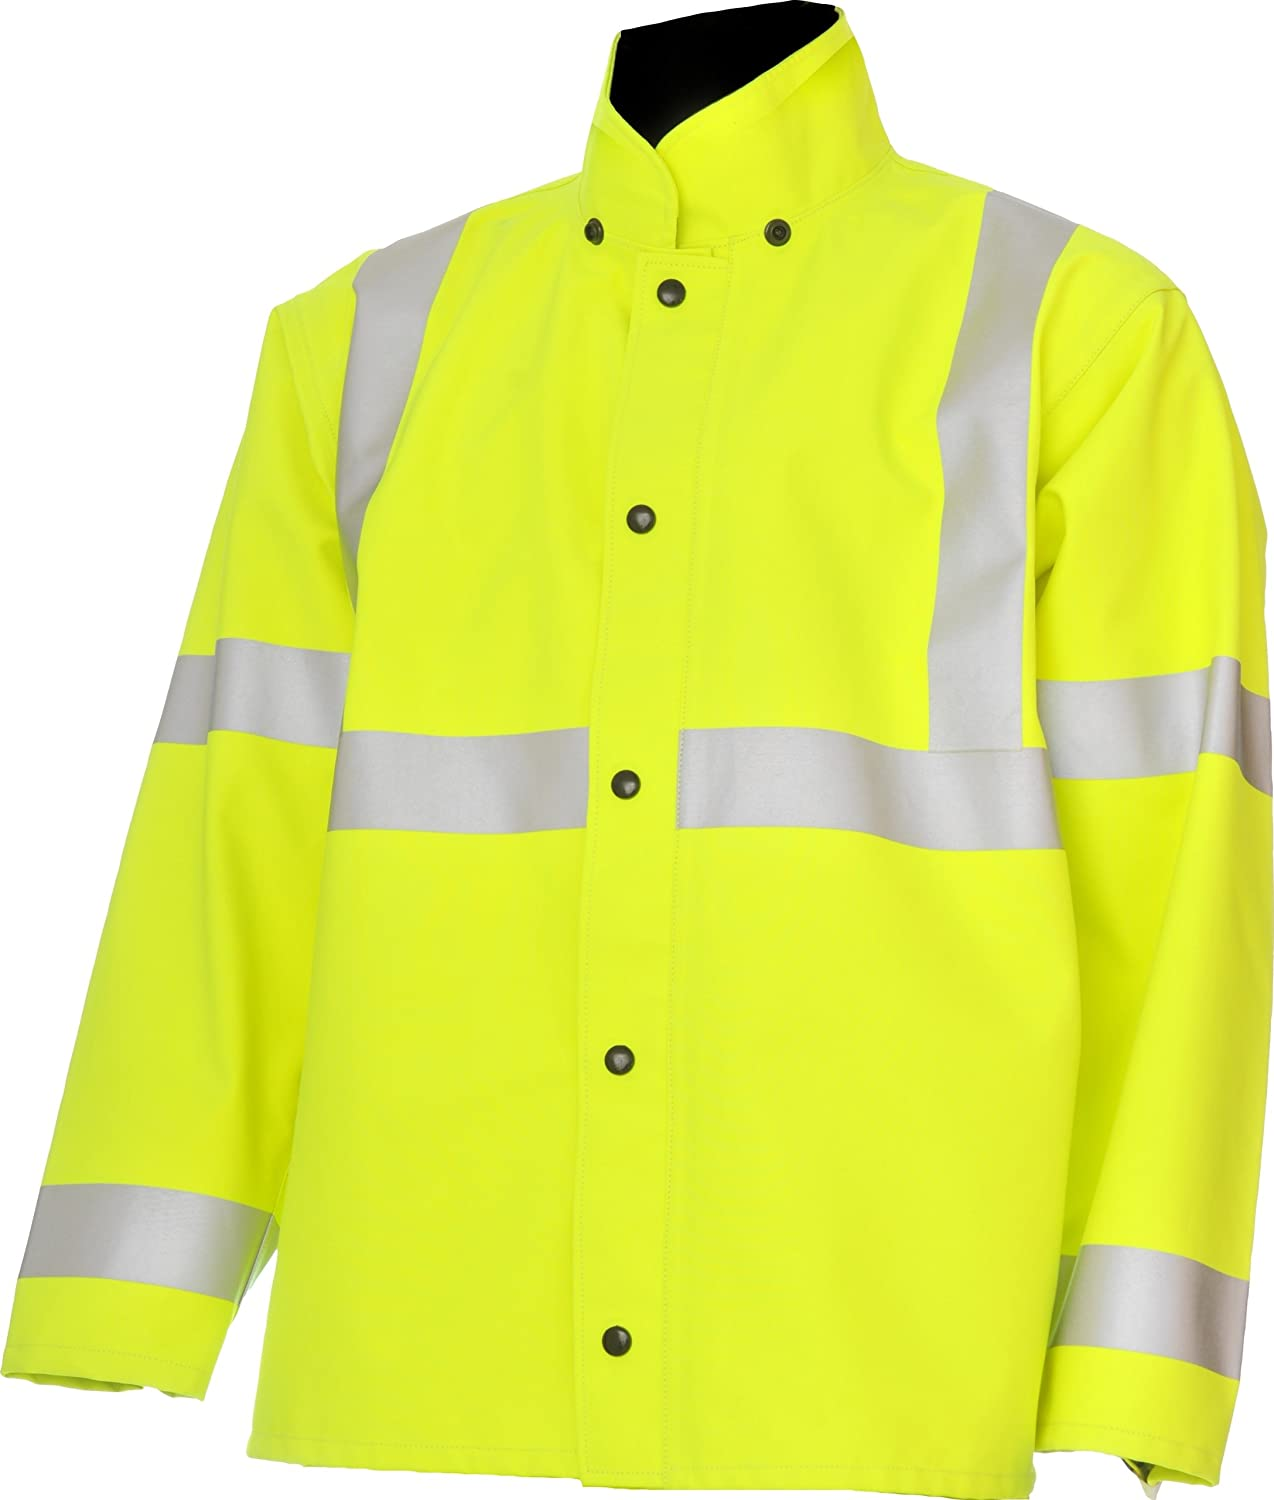 30 Length Lime Green Large WaterShed 939A3011-LM-LGE StormShield Snap Storm Front Waterproof GORE-TEX Jacket with Cuff and Hood Snaps